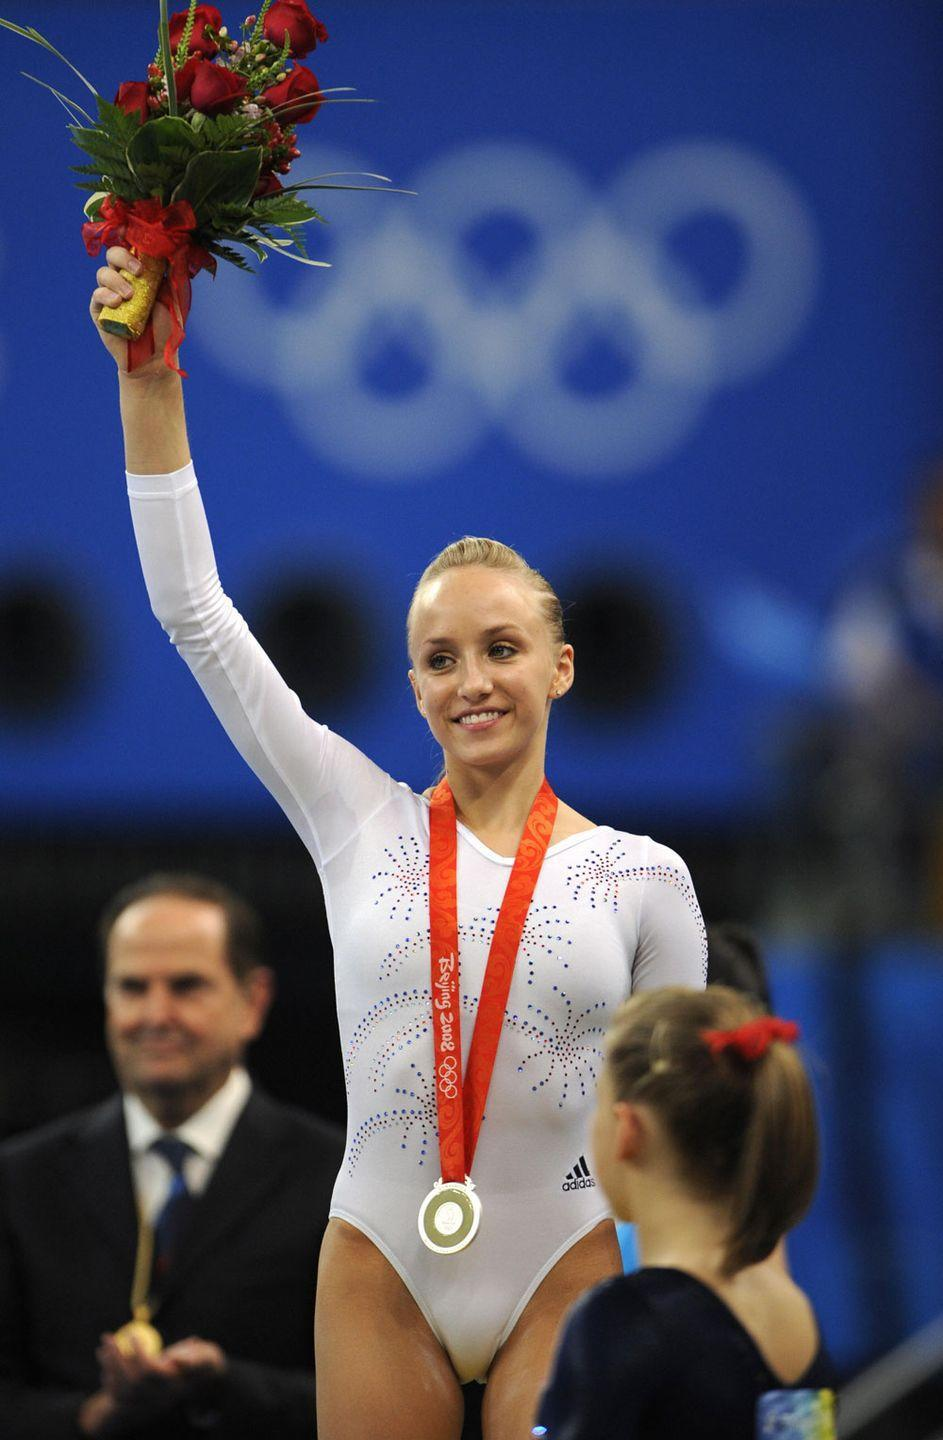 <p><em>Nastia Liukin</em><br></p><p>It's pretty much exactly the same as what Shawn Johnson wore that day but in white. Not that there is anything wrong with that. There are only so many ways to switch these things up.</p>